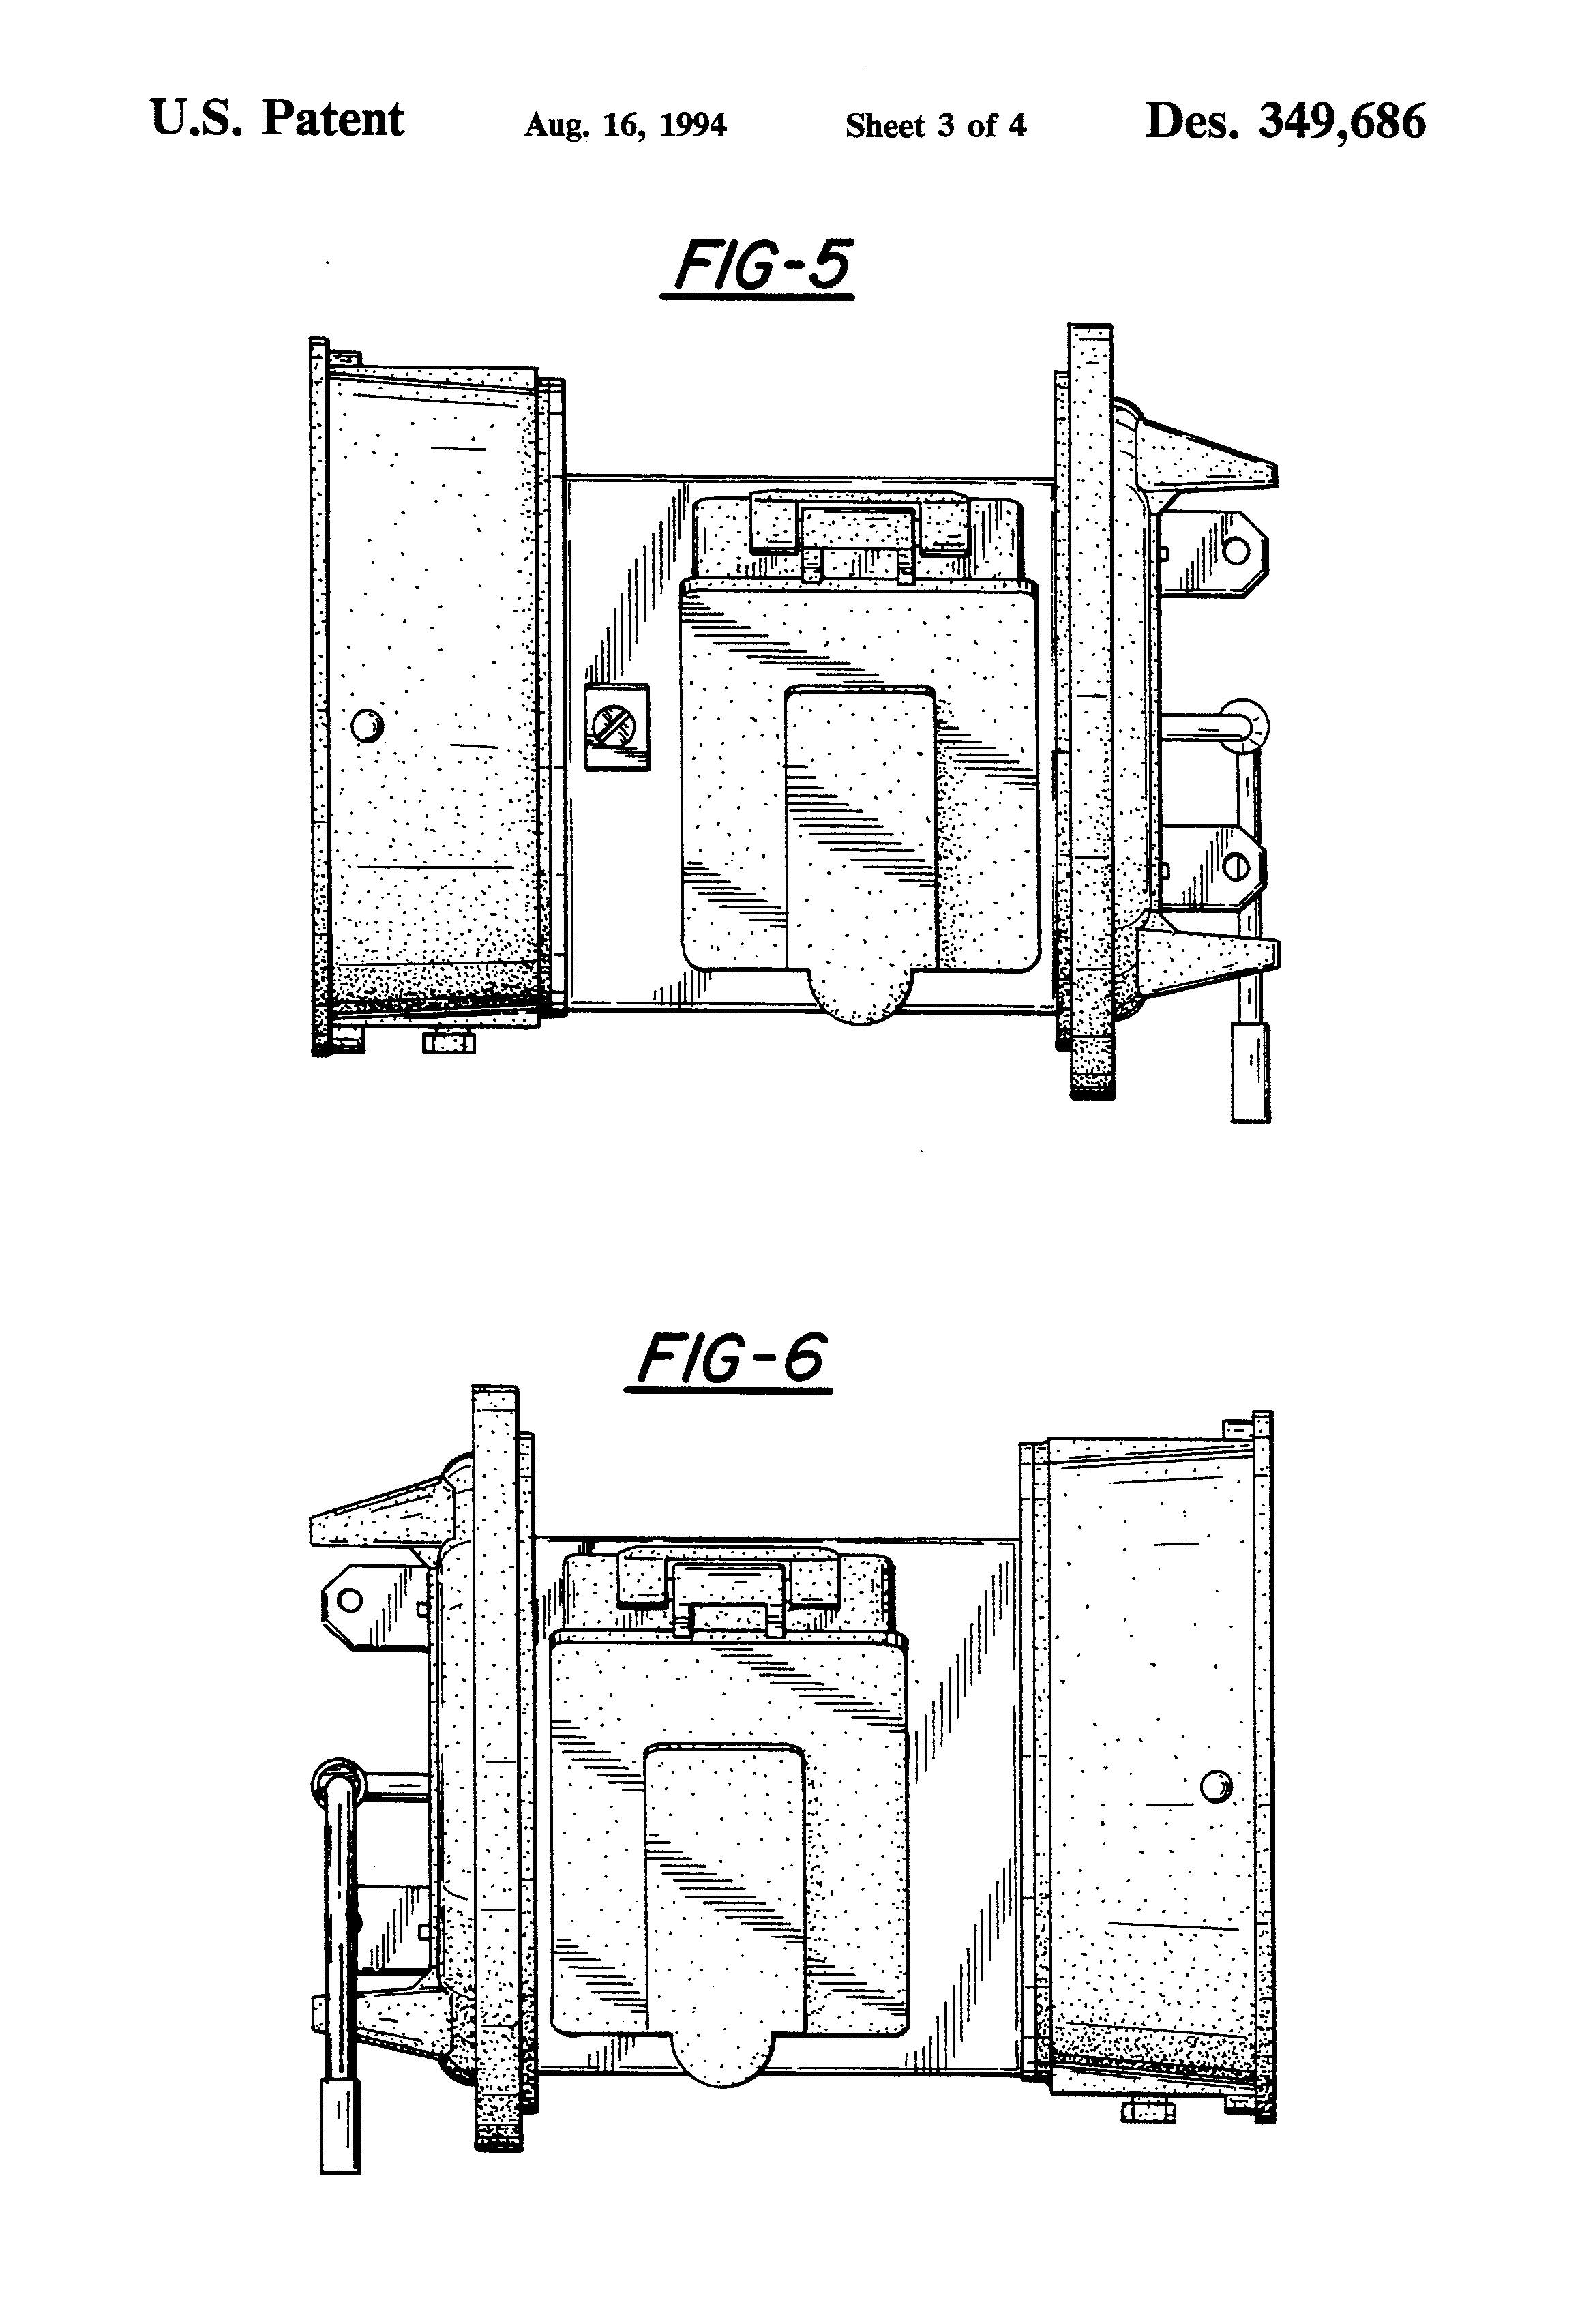 USD349686 on japanese electrical adapter